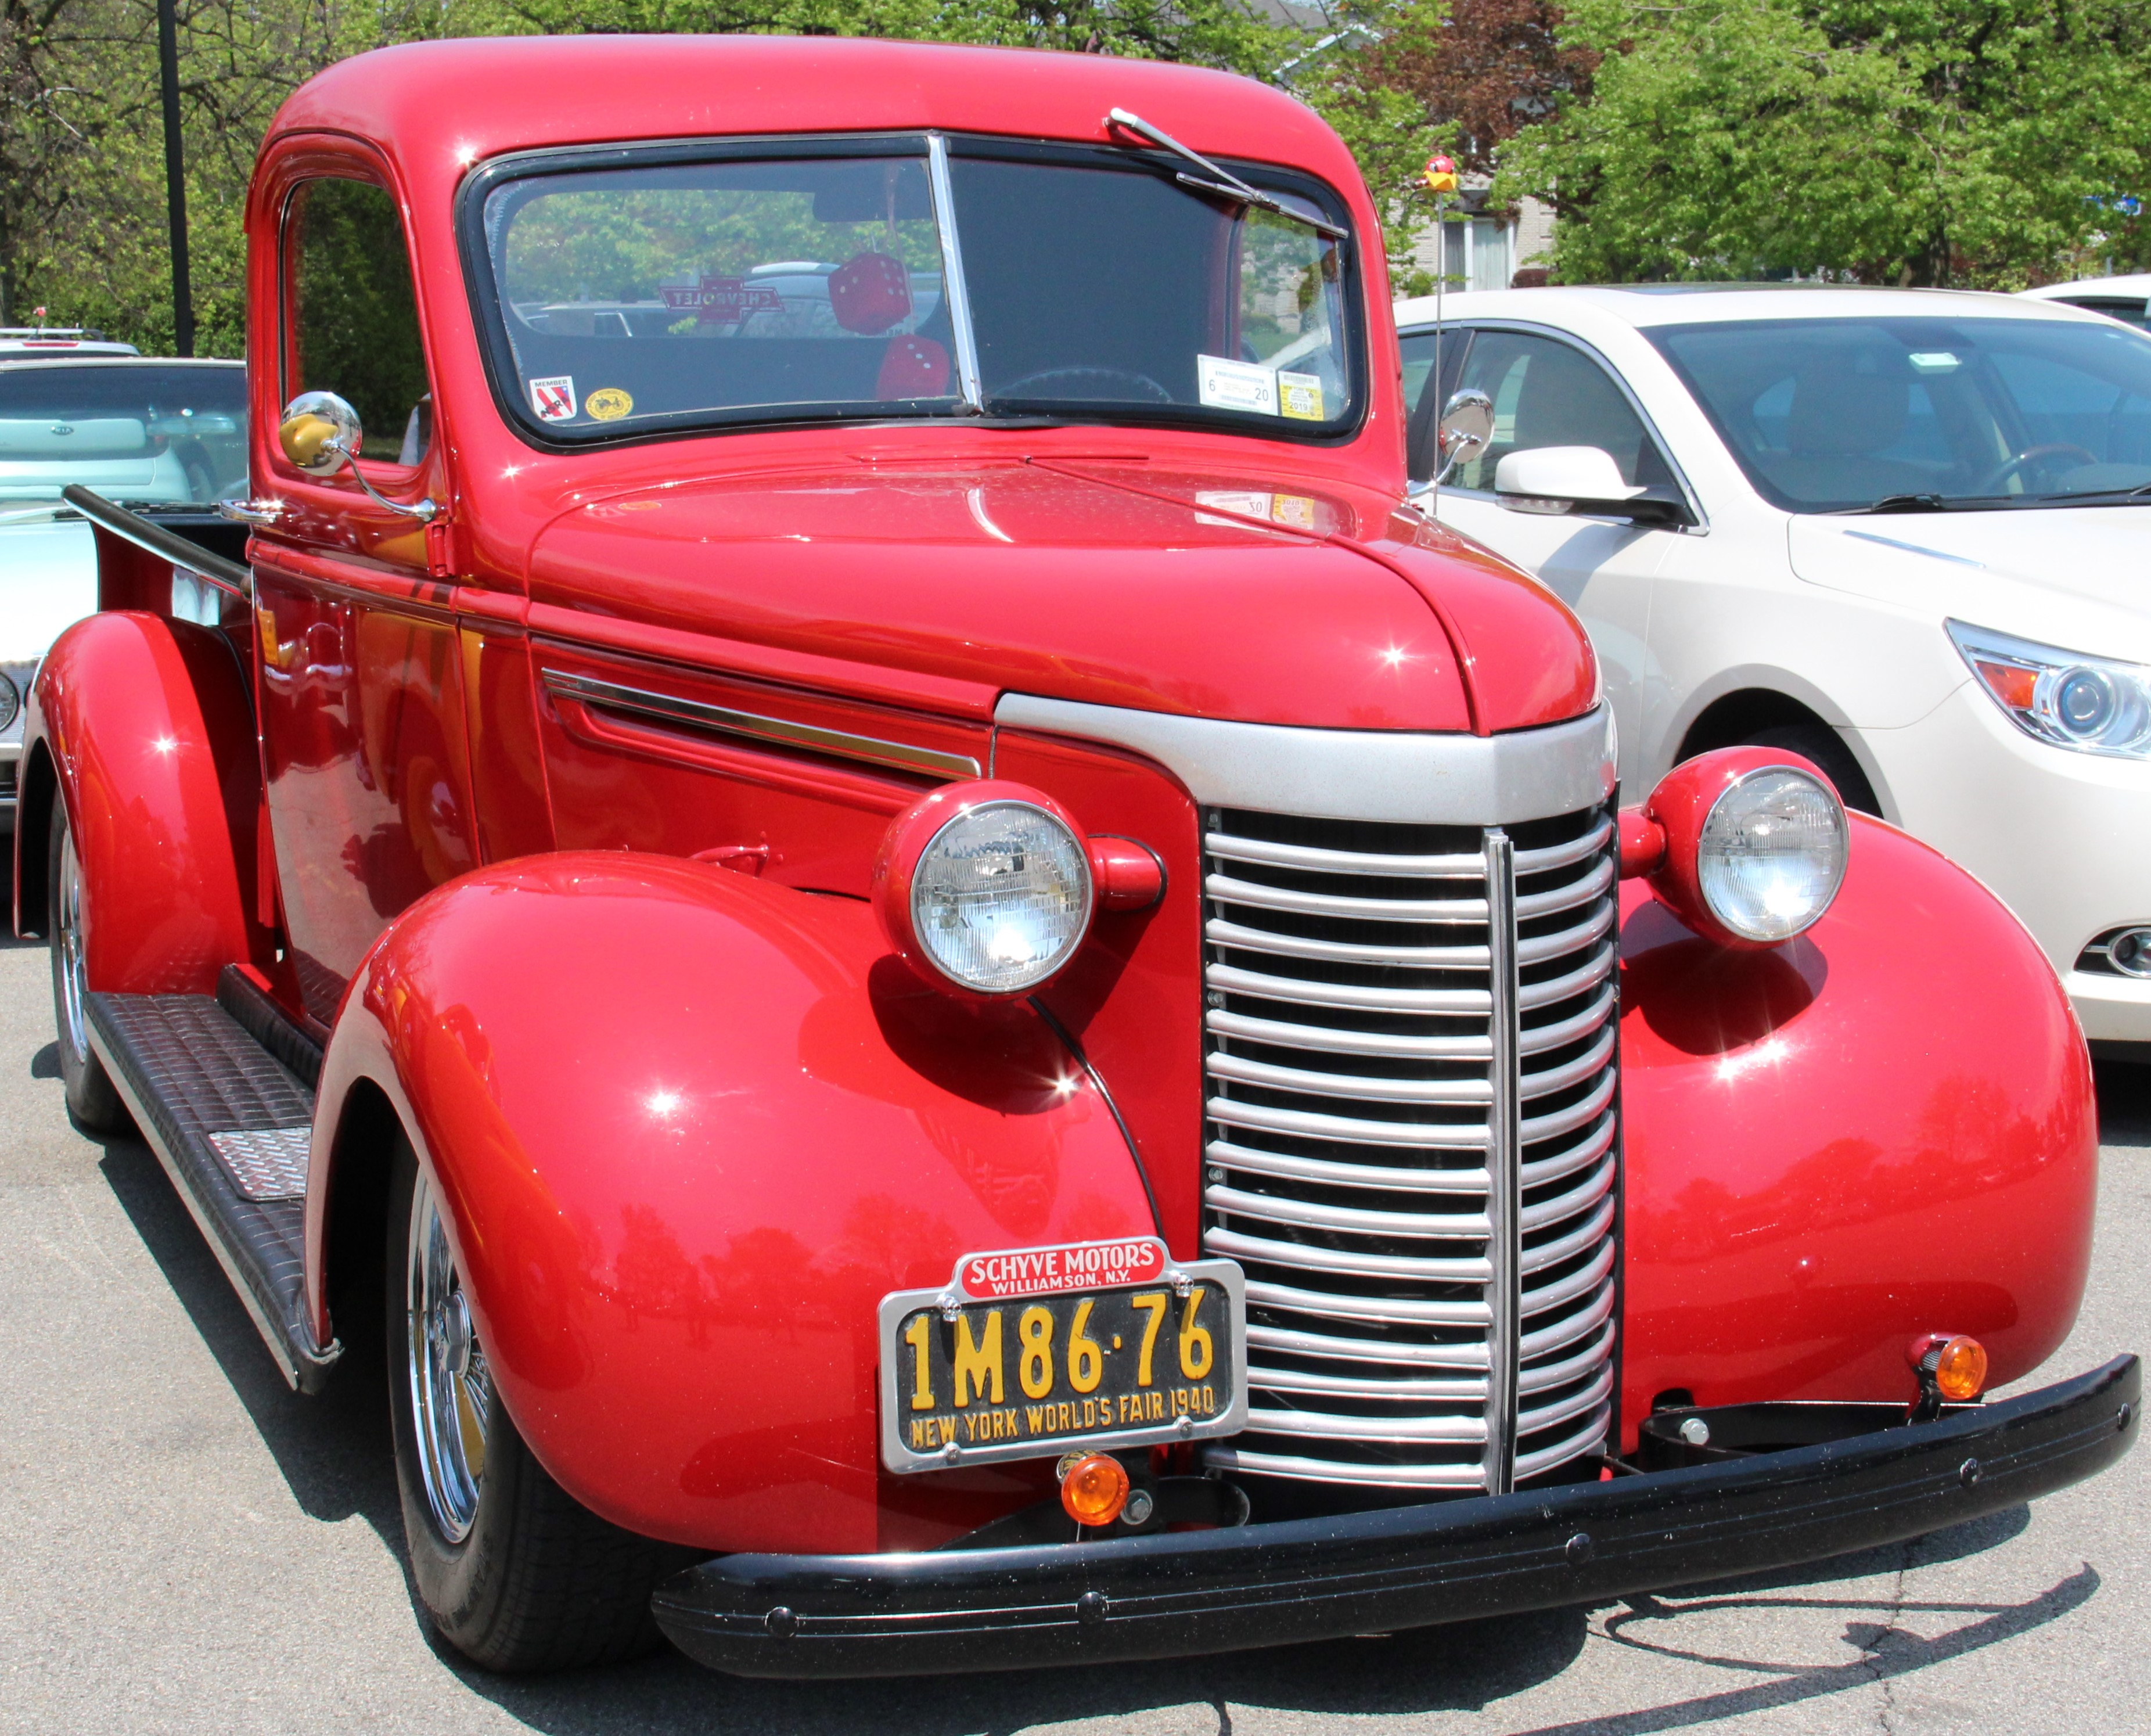 IMG_0318-Allens-40-Chevrolet-a